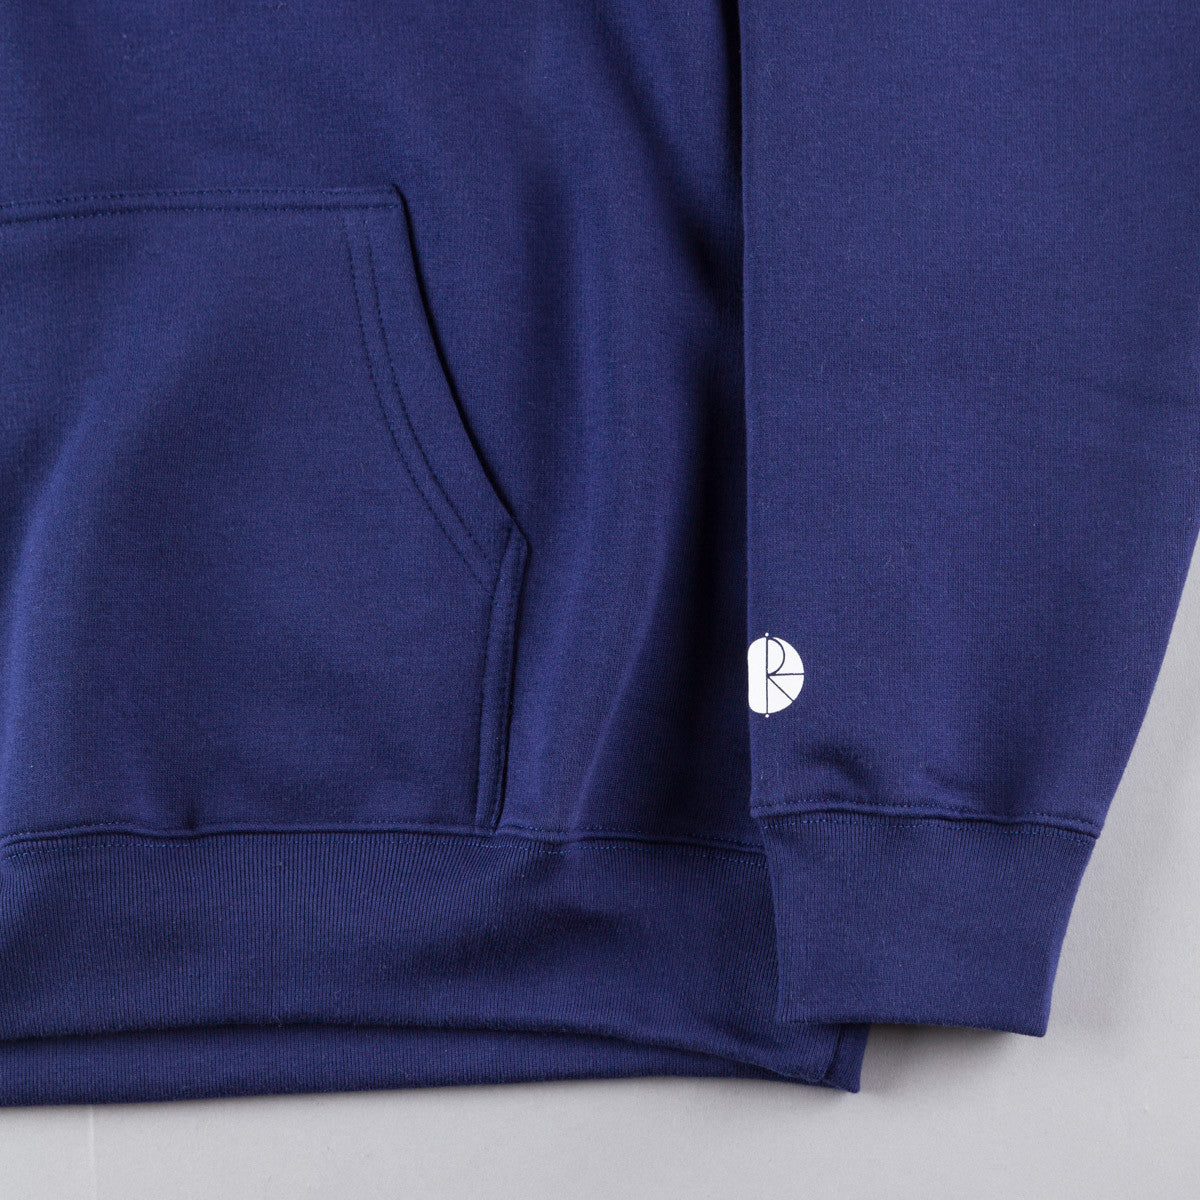 Polar Default Hooded Sweatshirt - Navy